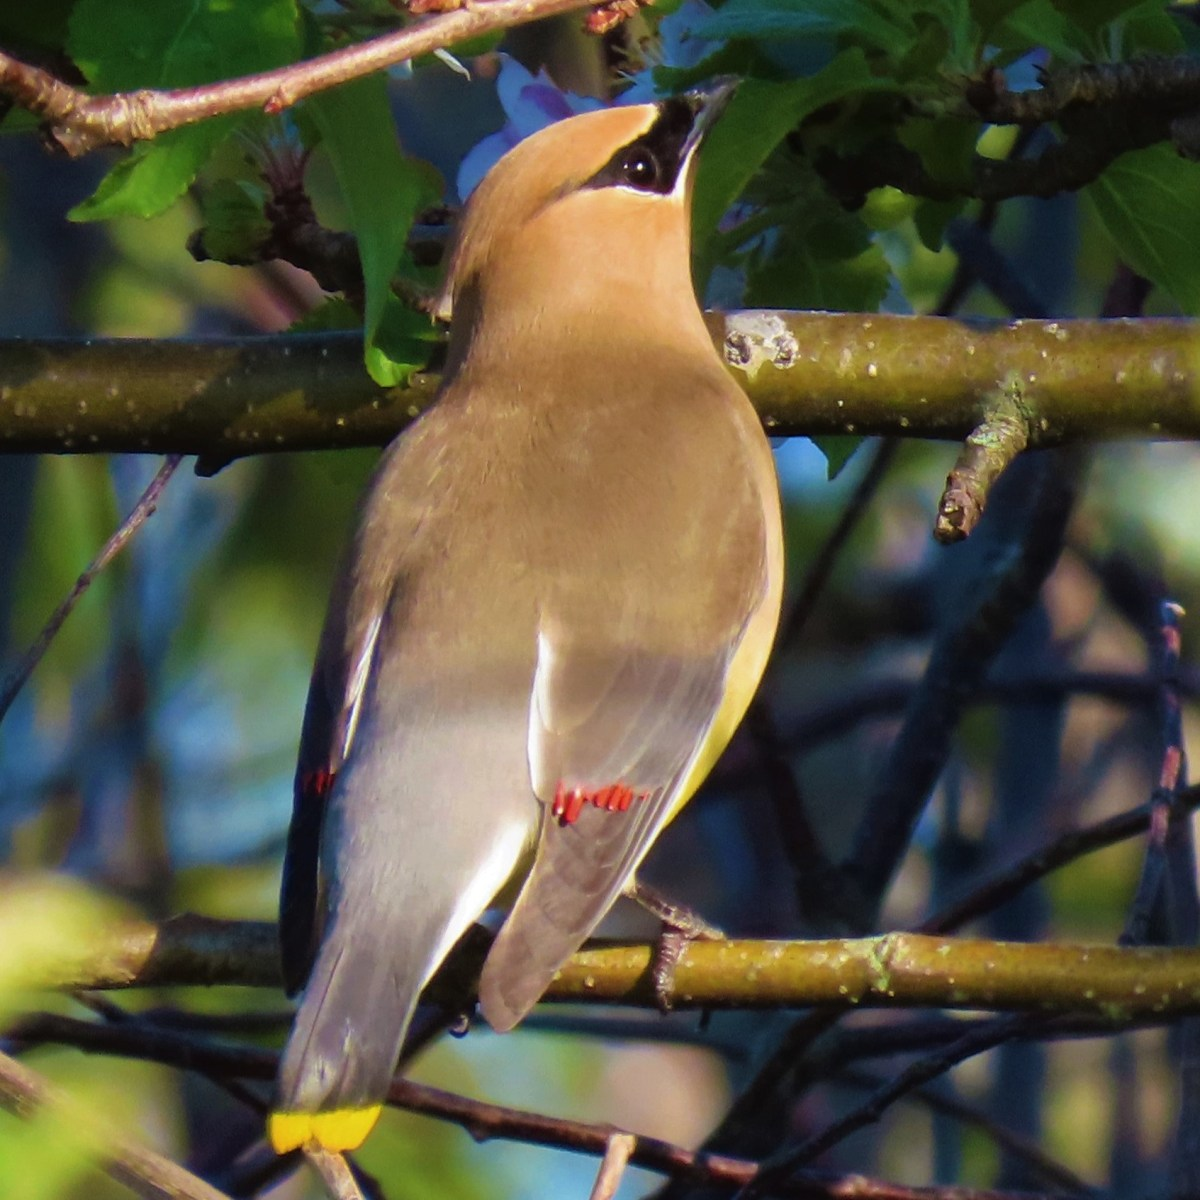 A Cedar Waxwing perched on a branch with its head tilted up at an angle